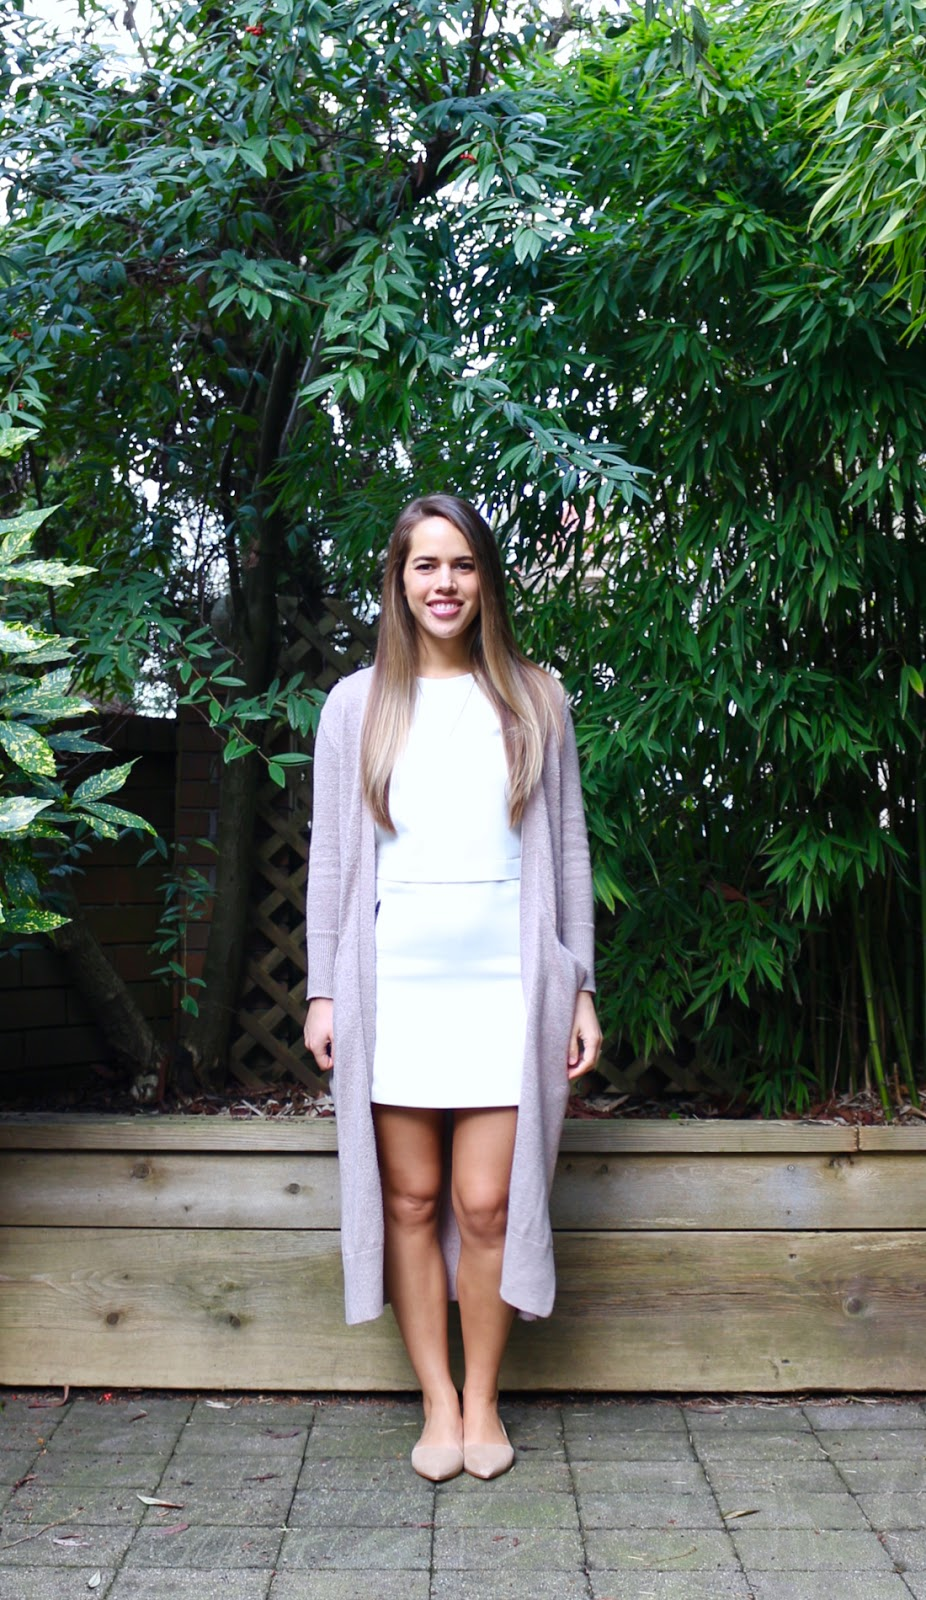 Jules in Flats - Duster Cardigan with White Shift Dress (Business Casual Spring Workwear on a Budget)